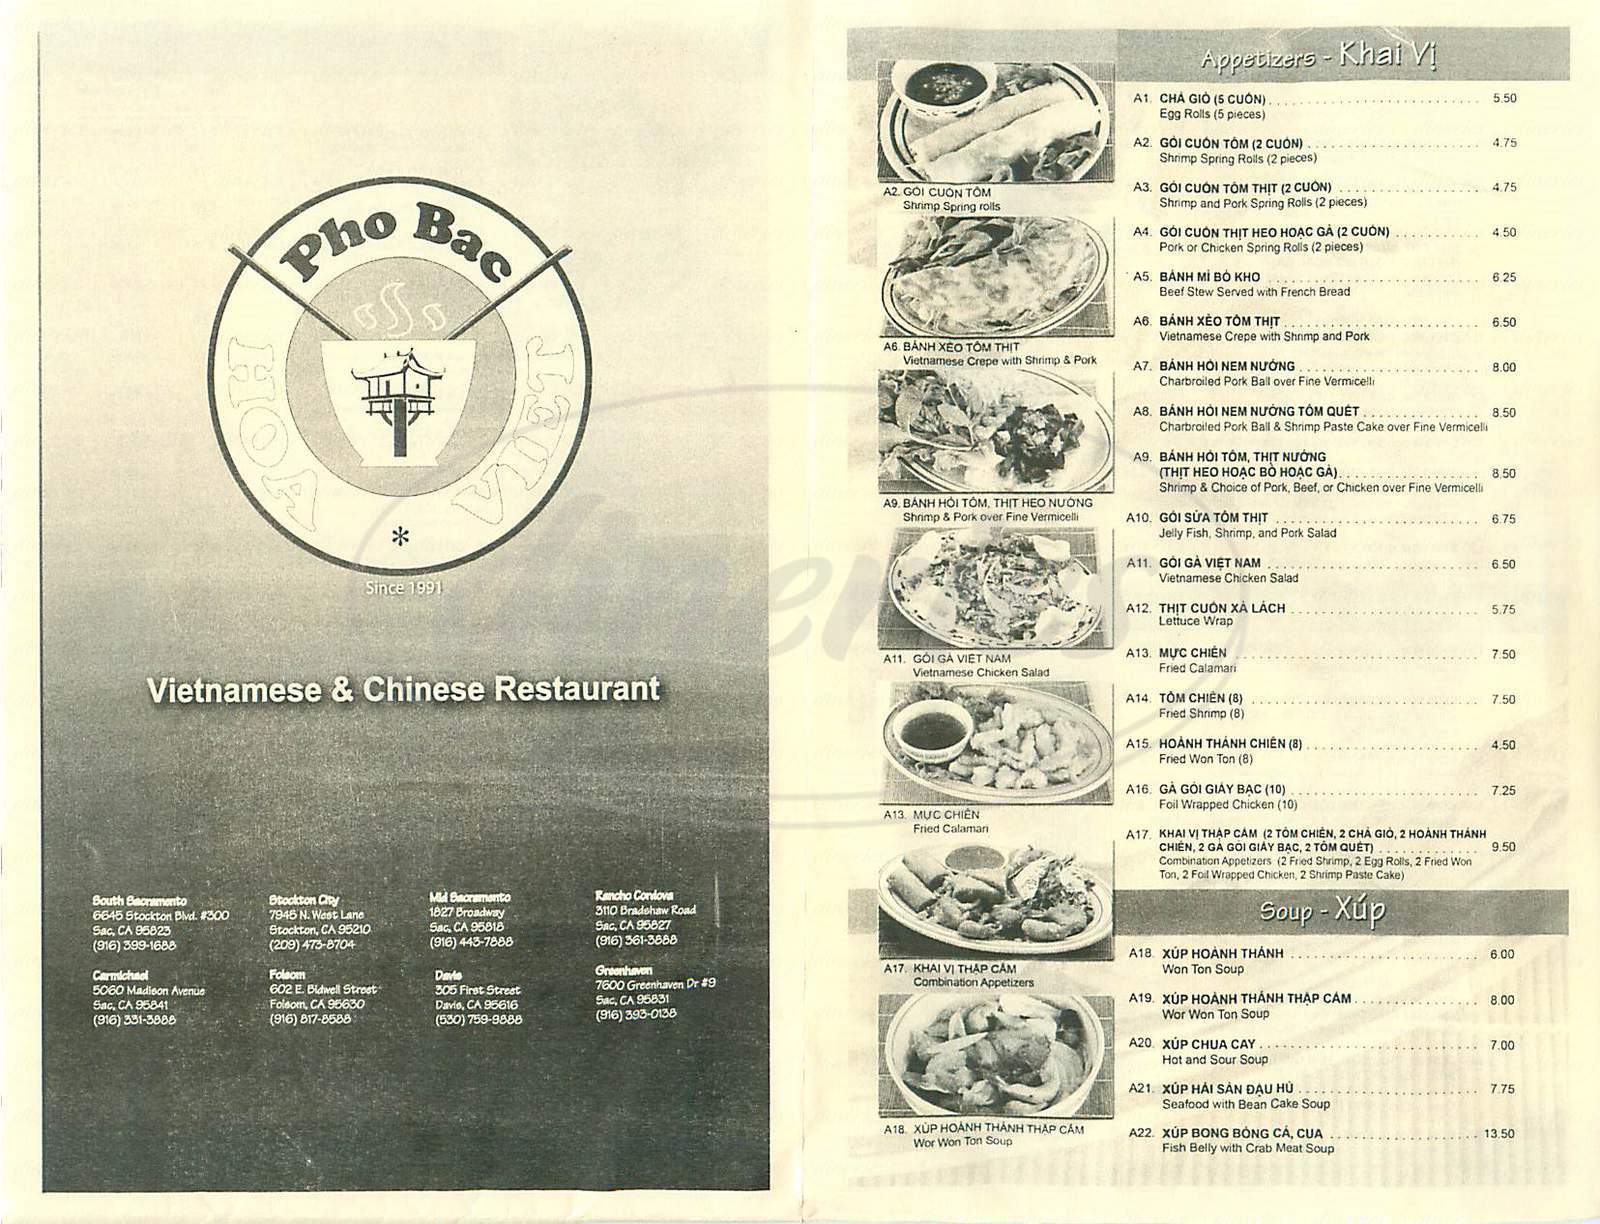 menu for Pho Bac Hoa Viet